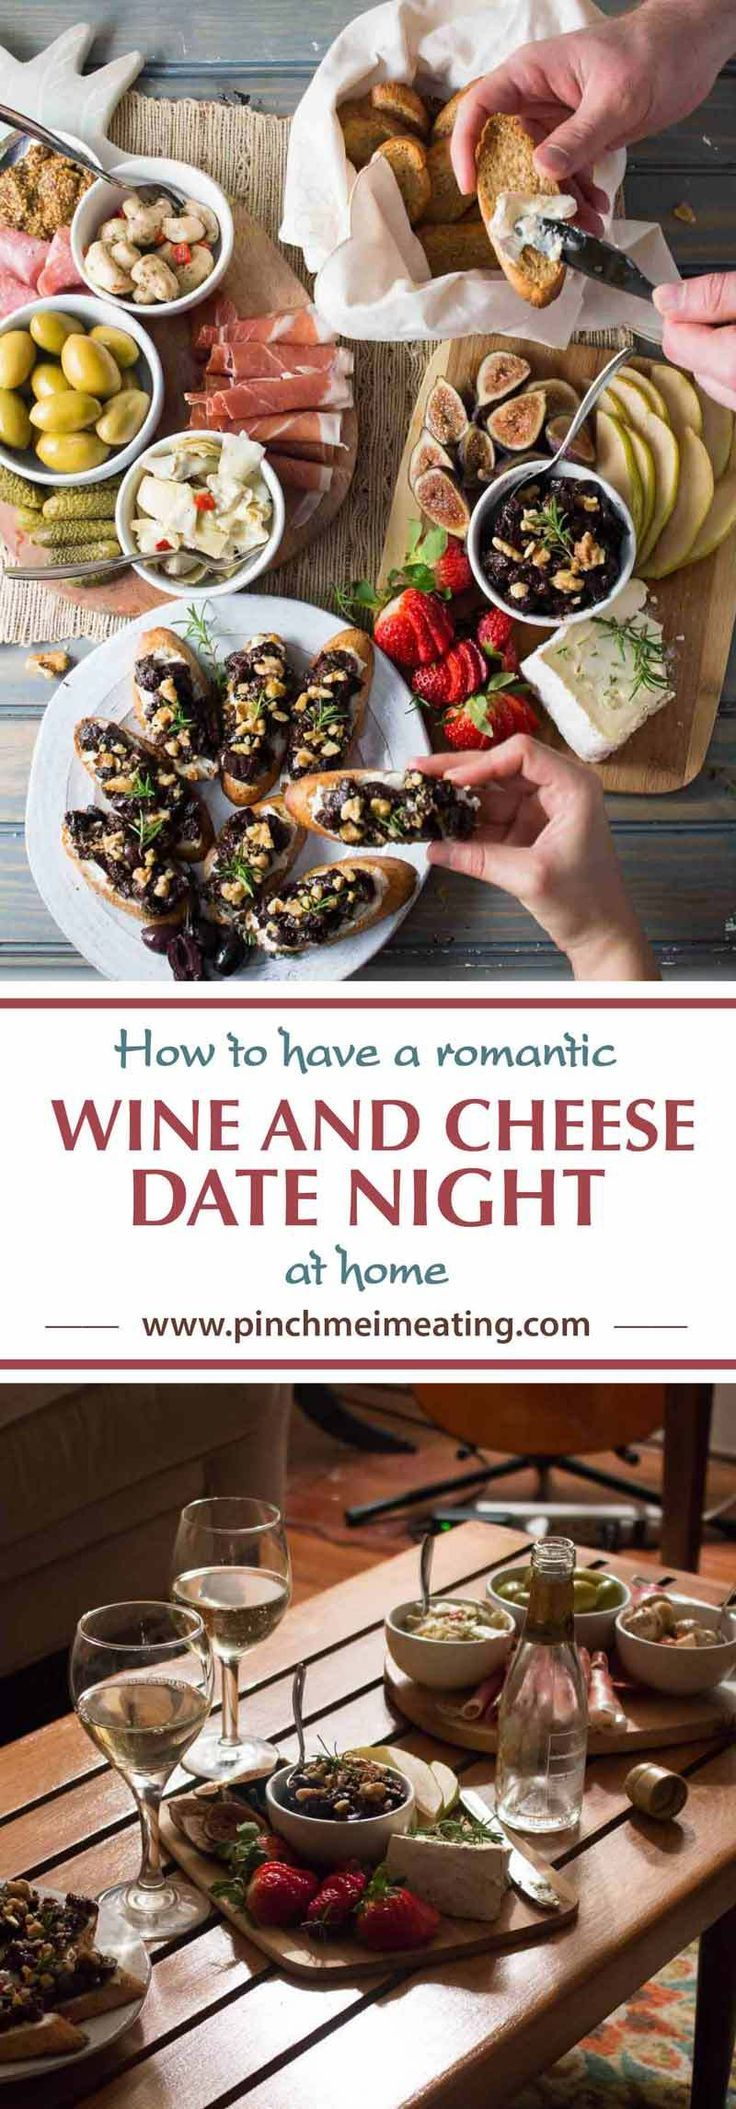 Learn how to plan a low-stress wine and cheese date night at home with these guidelines for putting together charcuterie and cheese boards and tips for setting the mood!